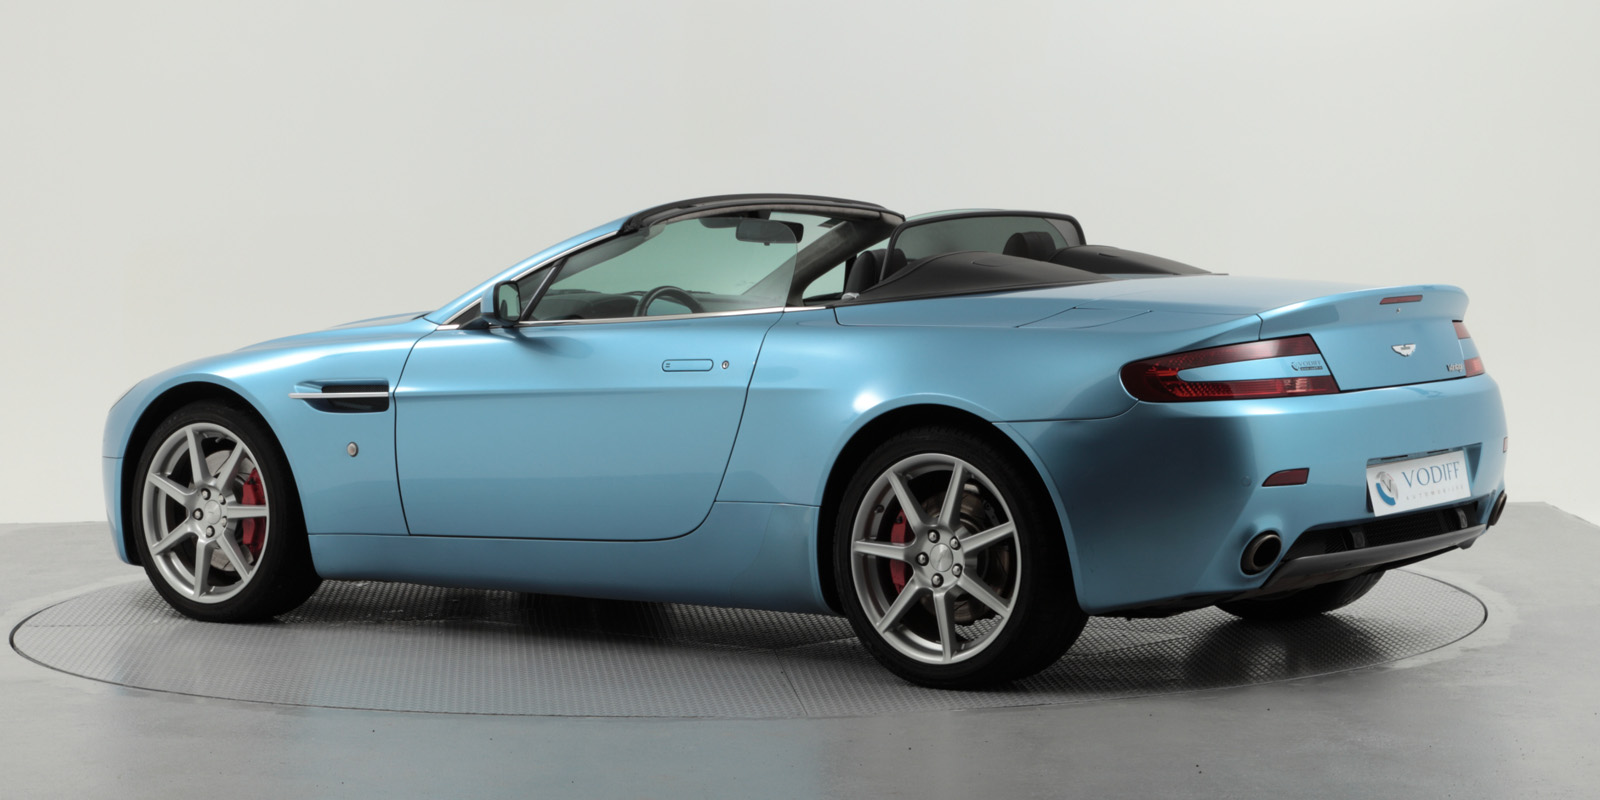 aston martin vantage cabriolet 4 3 l v8 sportshift bvs 385 cv occasion. Black Bedroom Furniture Sets. Home Design Ideas